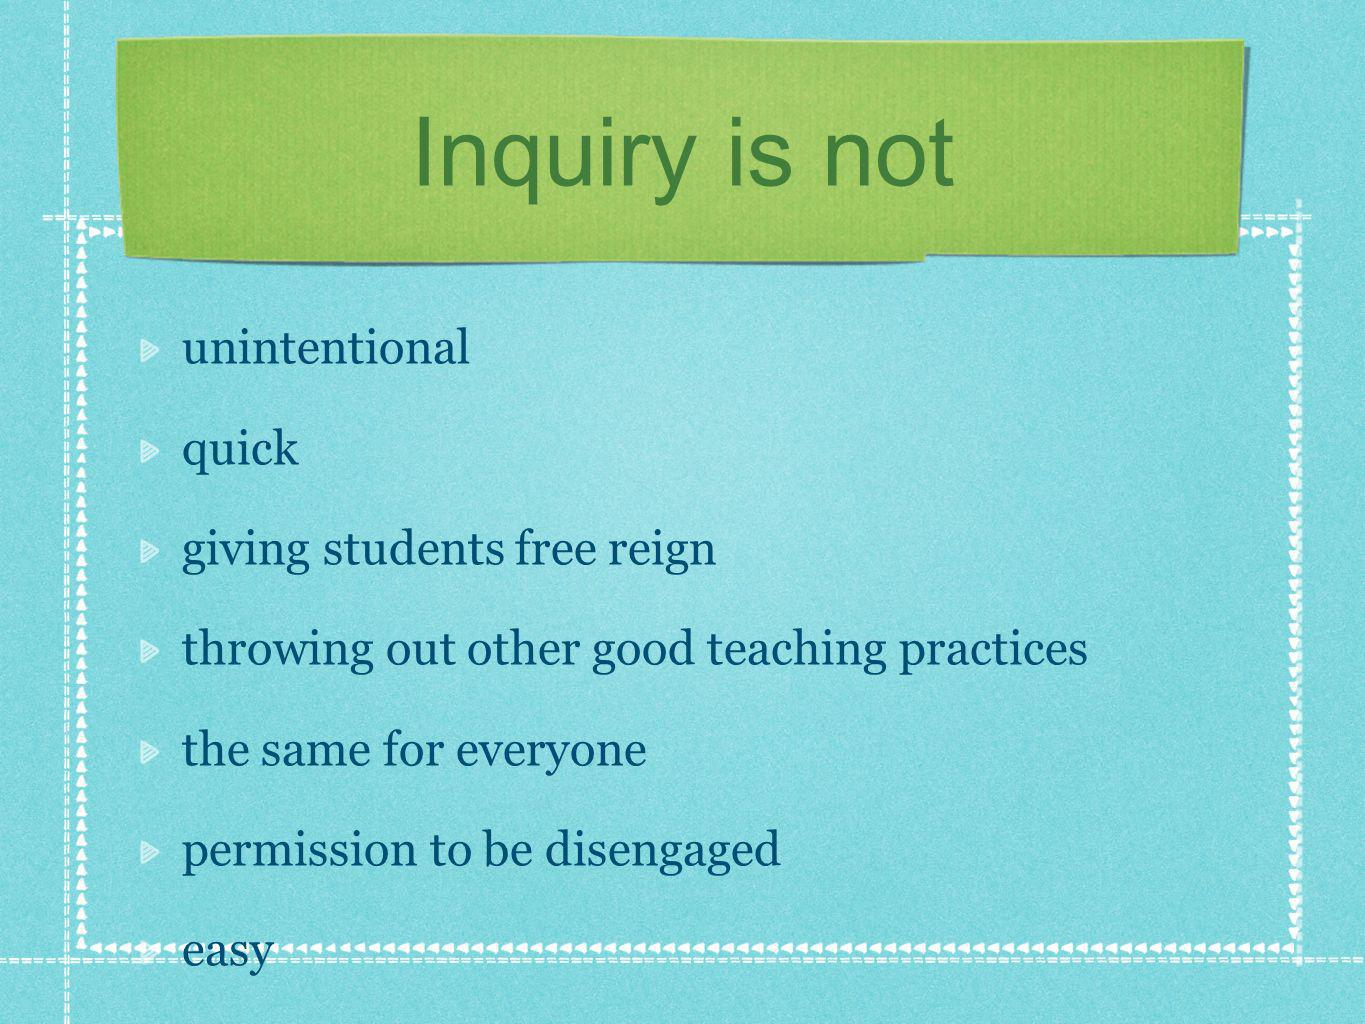 Inquiry is not unintentional quick giving students free reign throwing out other good teaching practices the same for everyone permission to be diseng